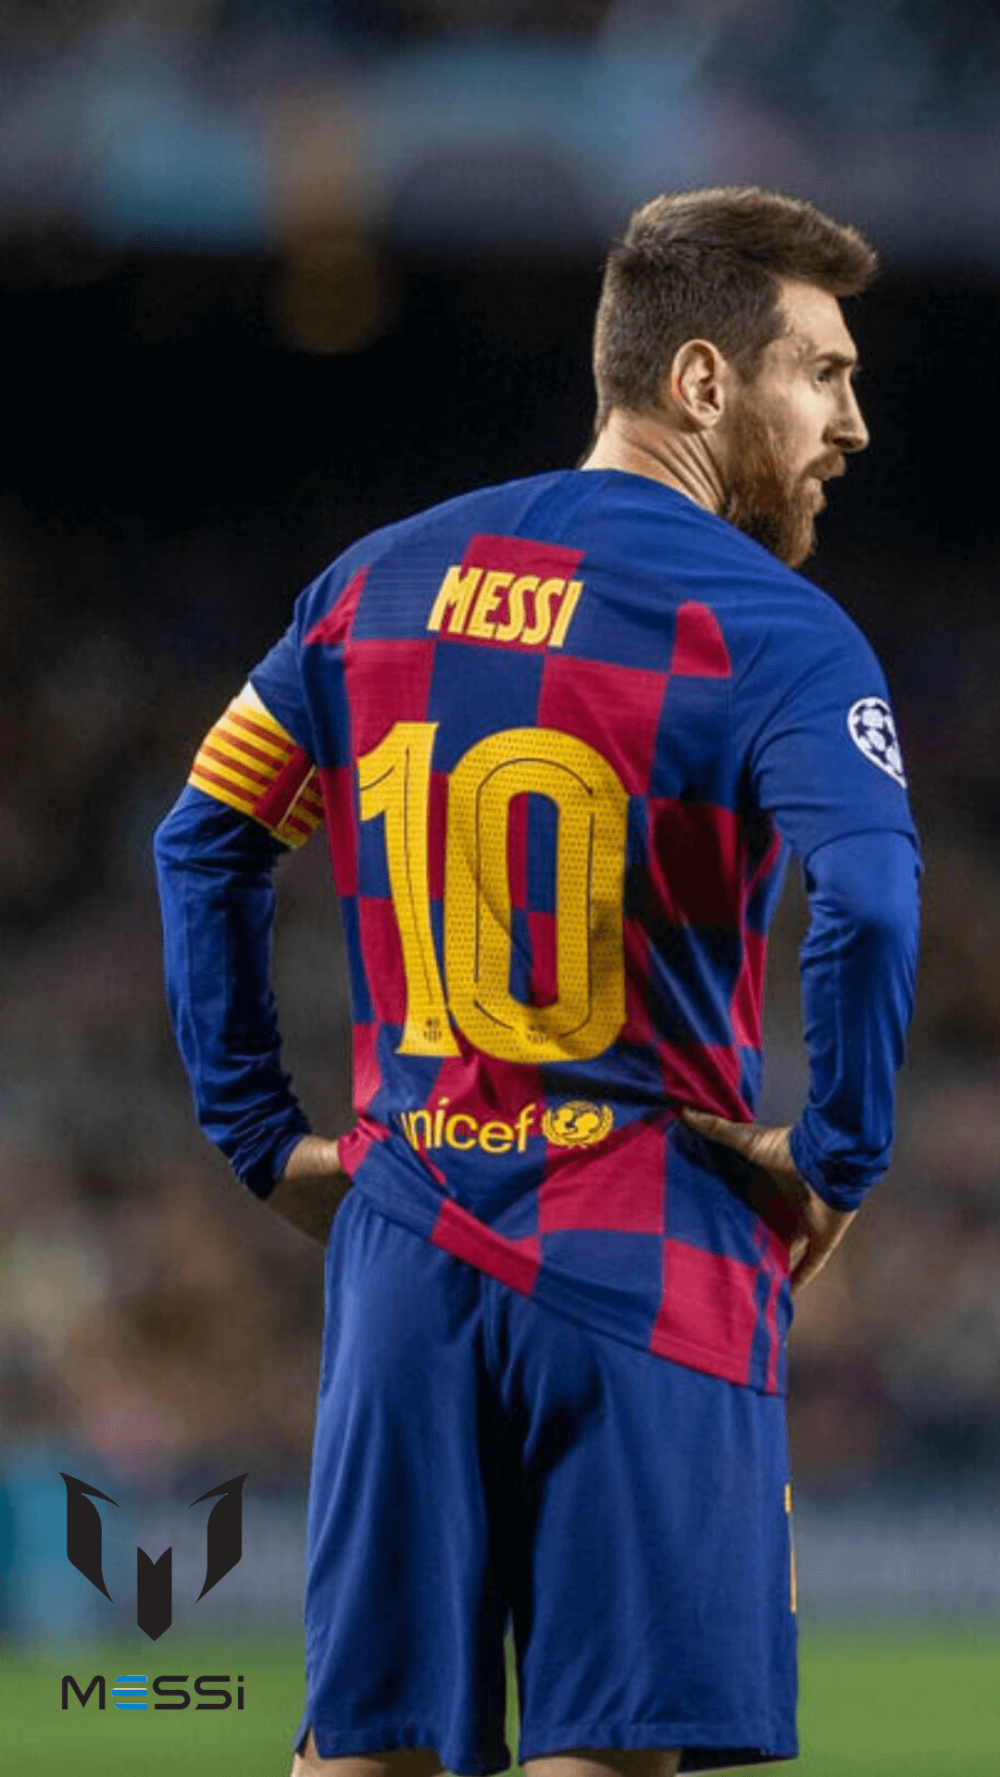 Messi 2020 4k Mobile Wallpapers In 2020 Lionel Messi Messi